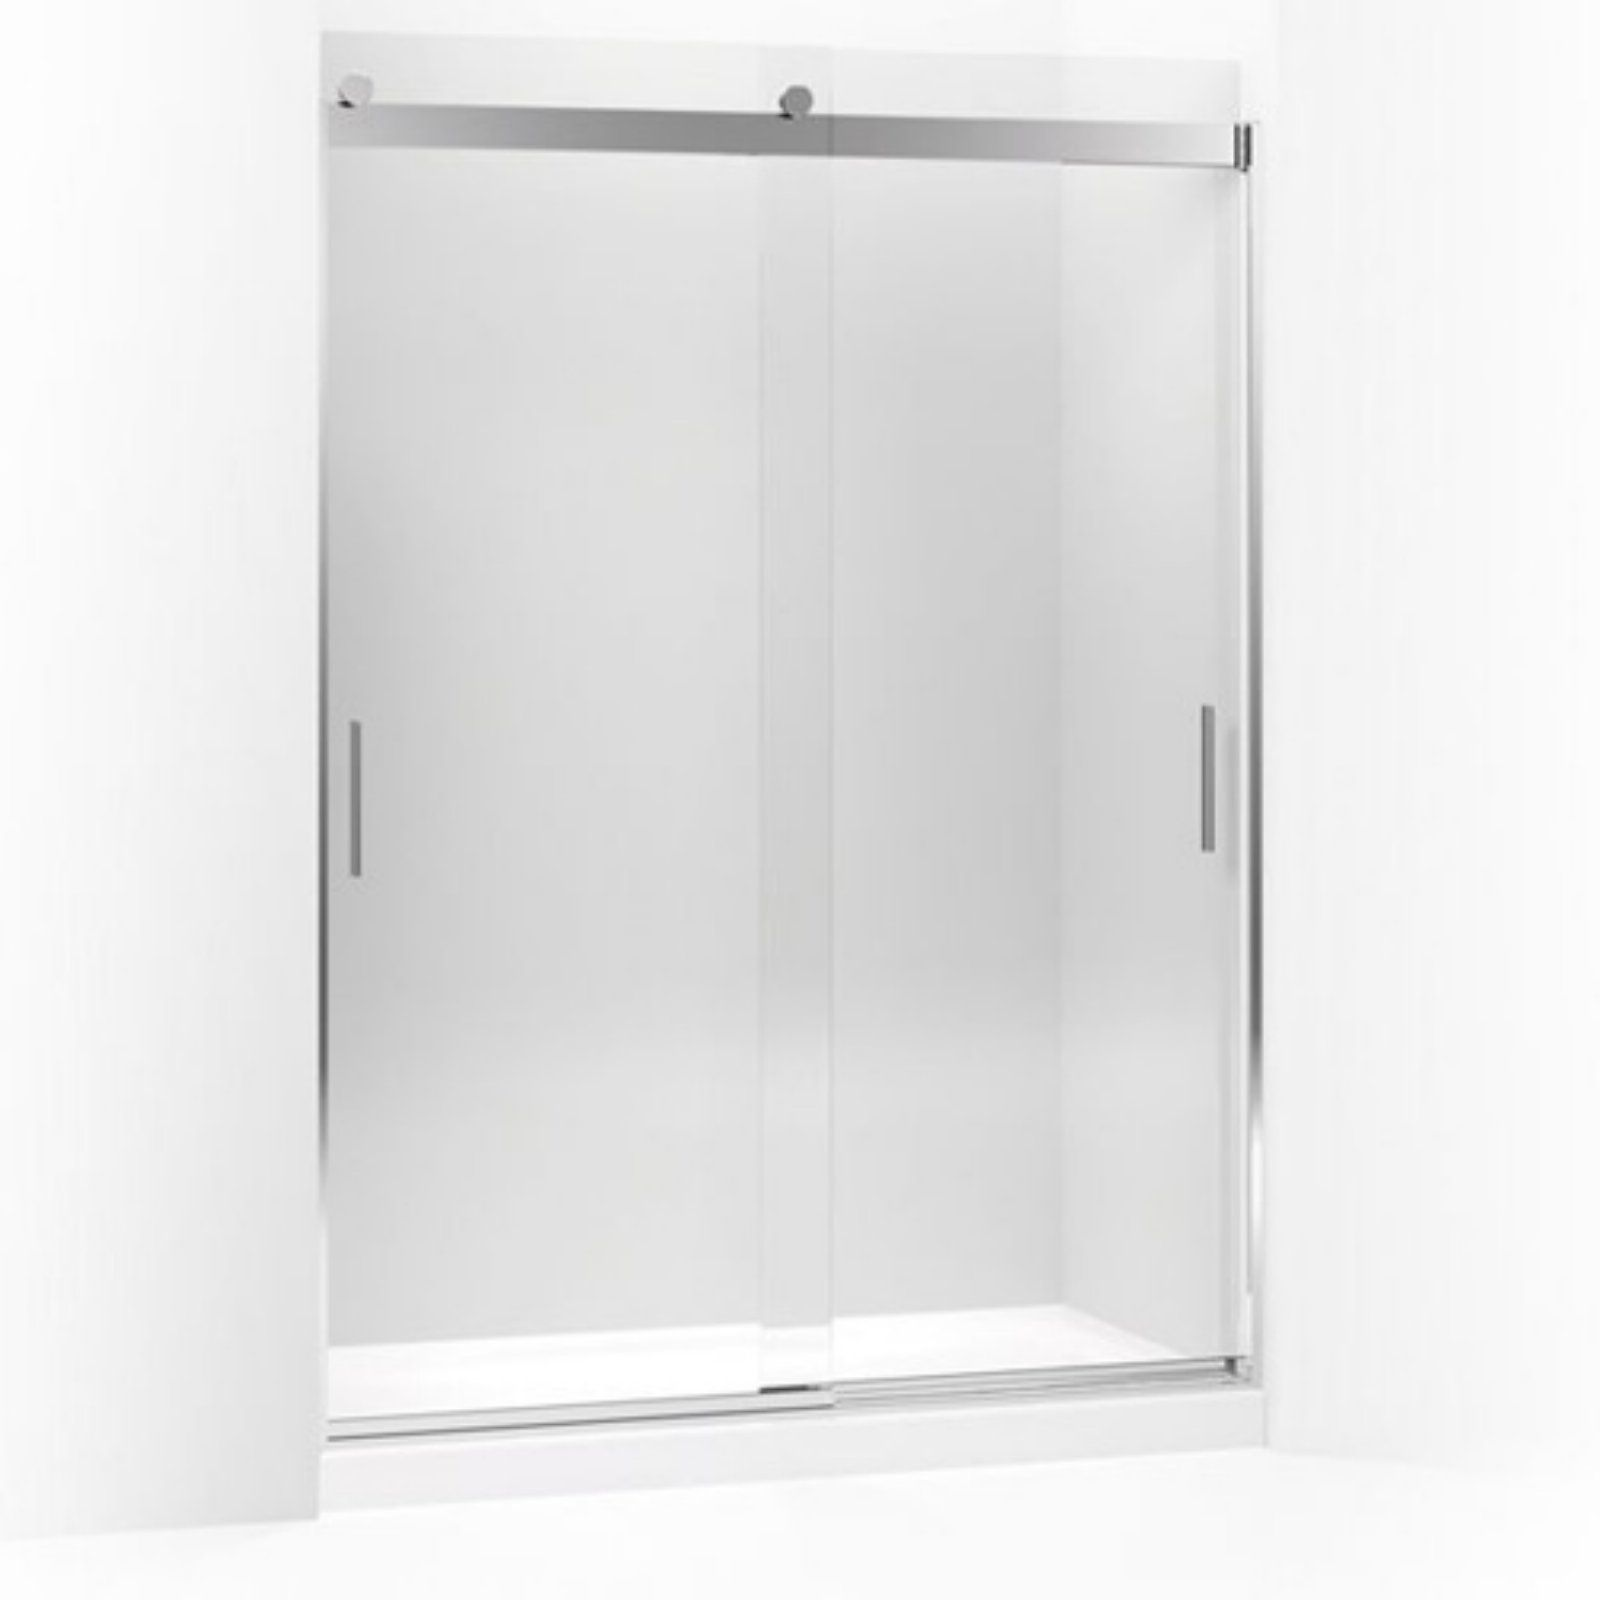 Kohler Revel K706165 L Nx 56 63w X 59 63h In Clear Glass Sliding